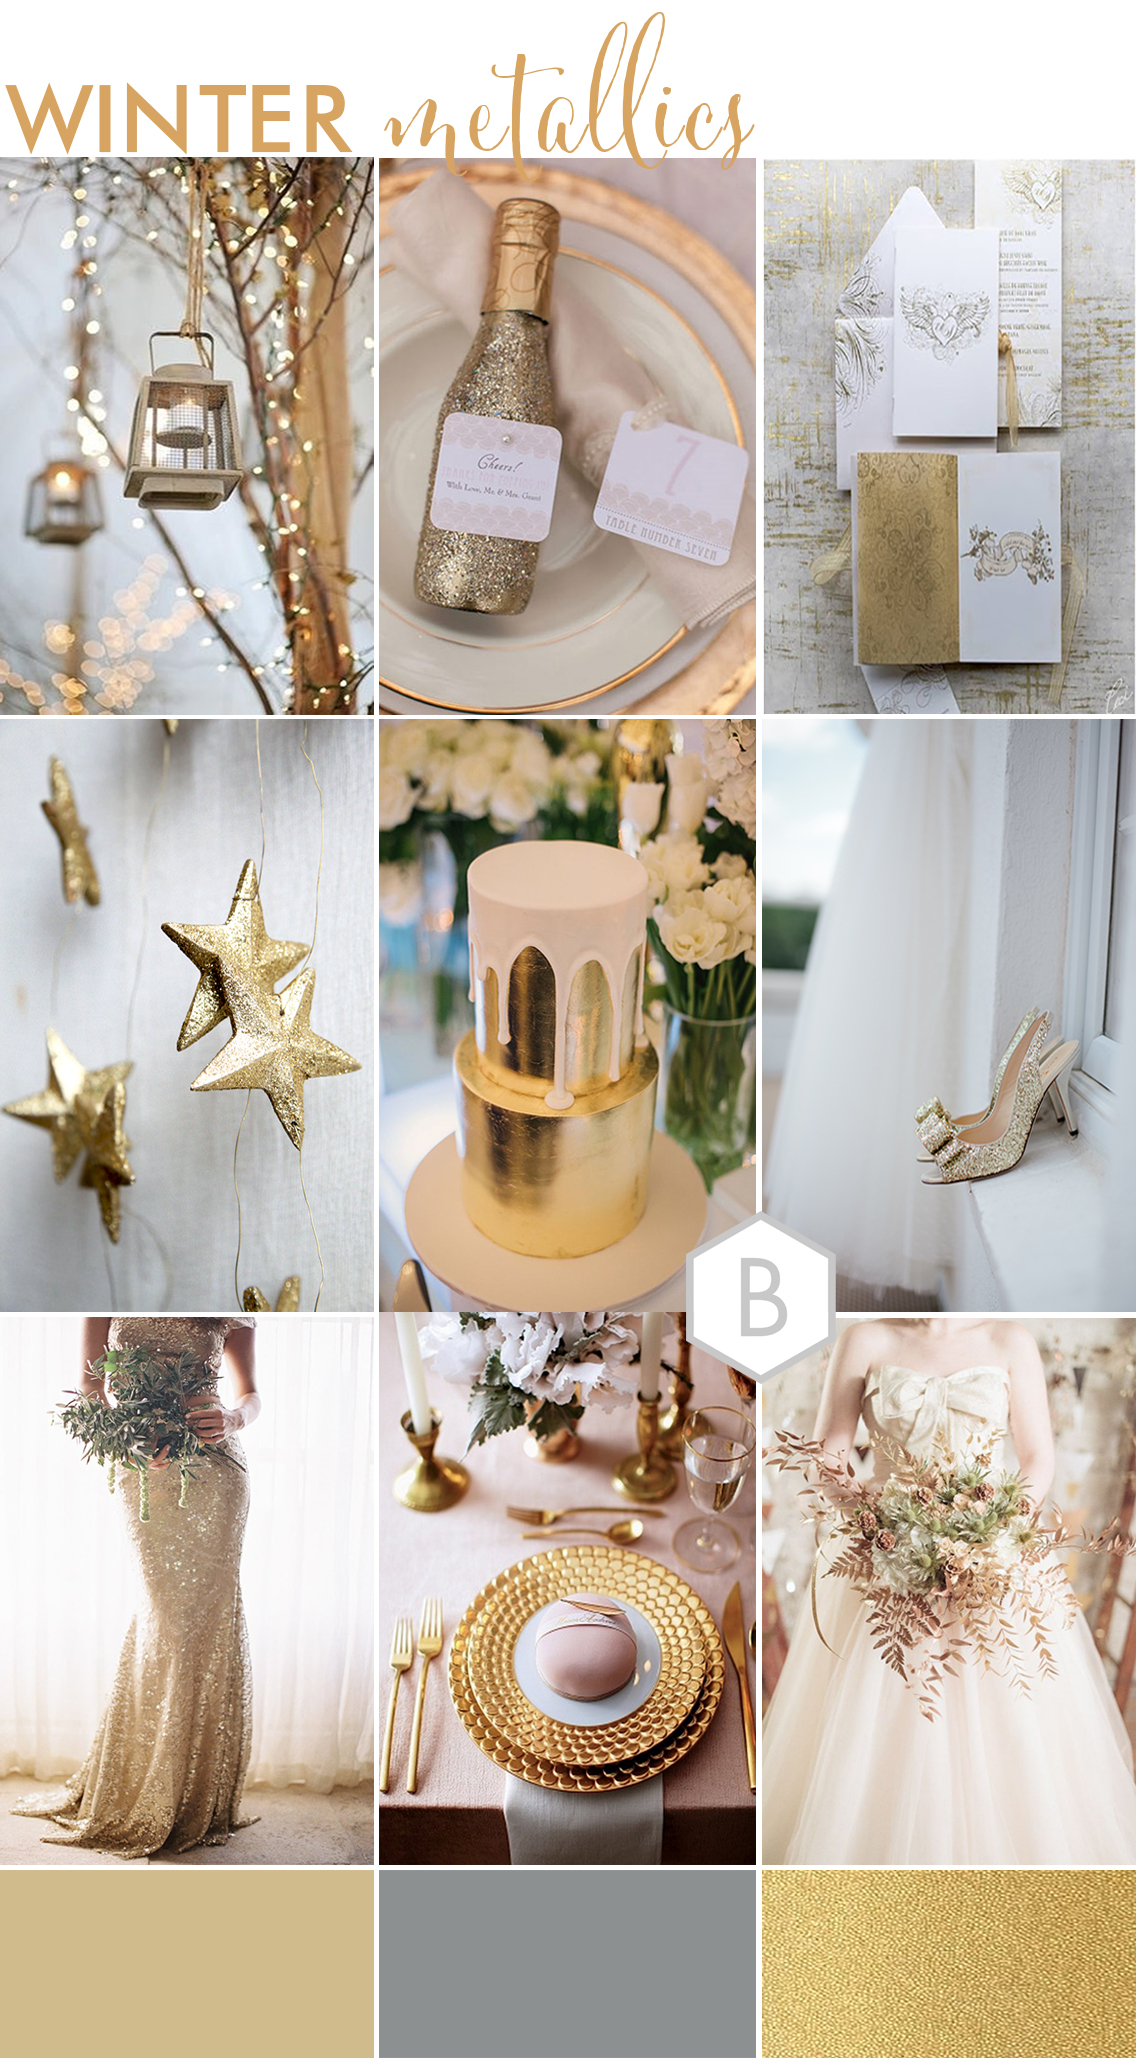 BLOVED wedding inspiration winter metallics